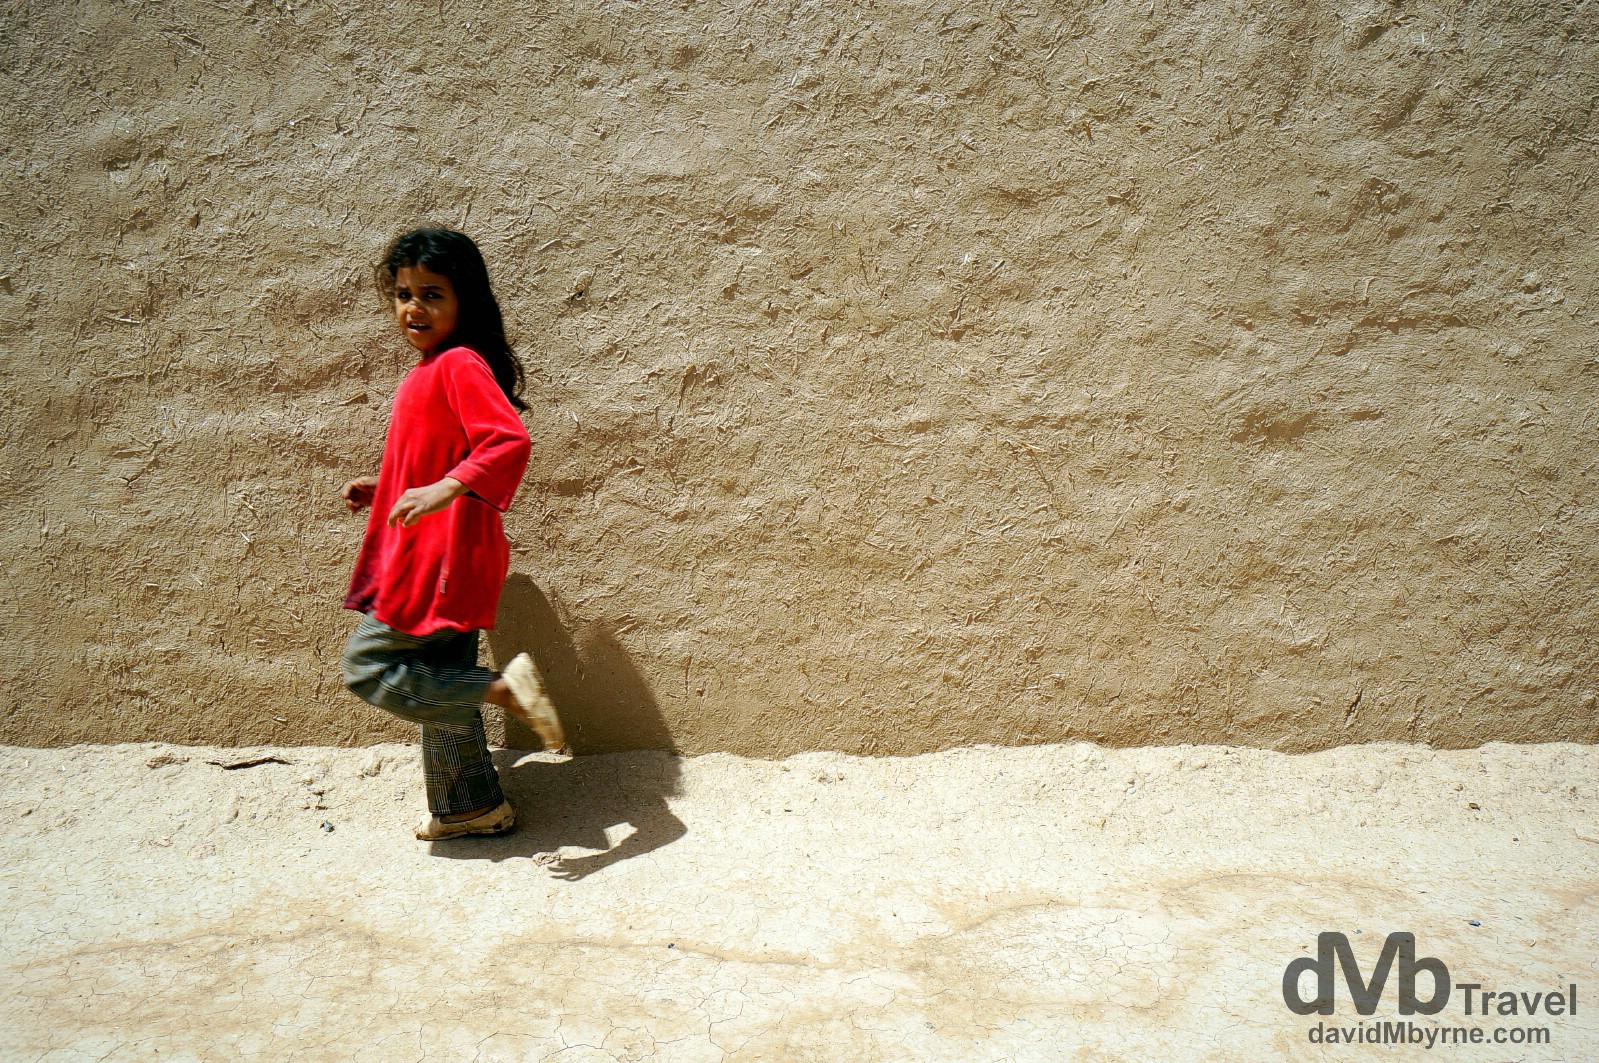 Walking by the pise (mud & rubble building material) walls of Ksar Oualad Abdelhalim, Rissani, Morocco. May 22nd, 2014.